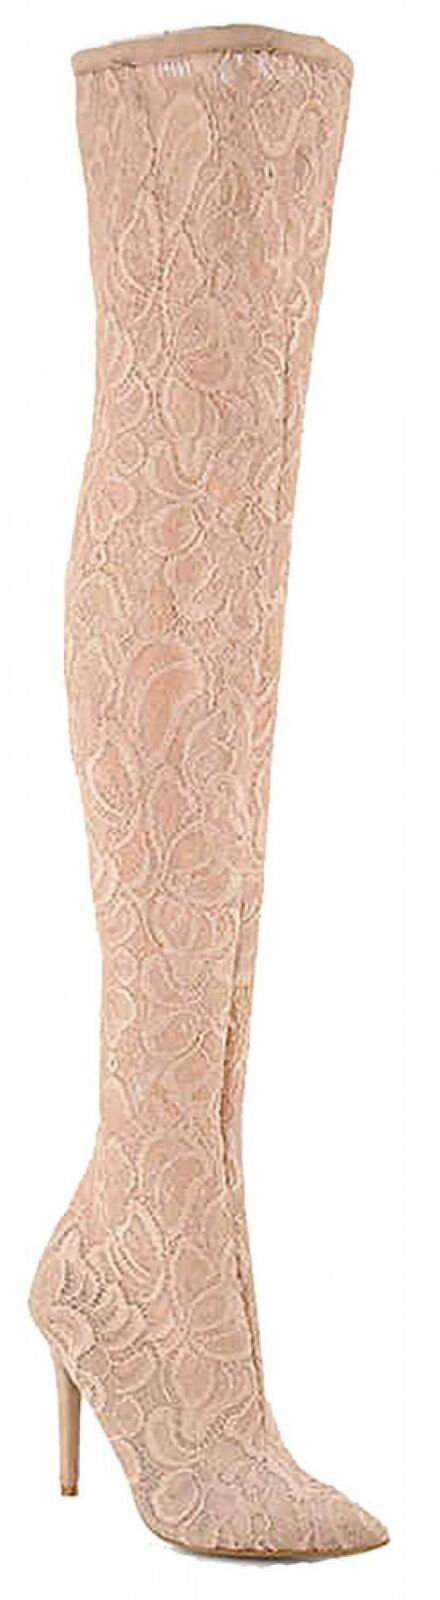 Anne Michelle Dedicate 22S femmes Floral Stetch Lace Over The Knee Pointy...